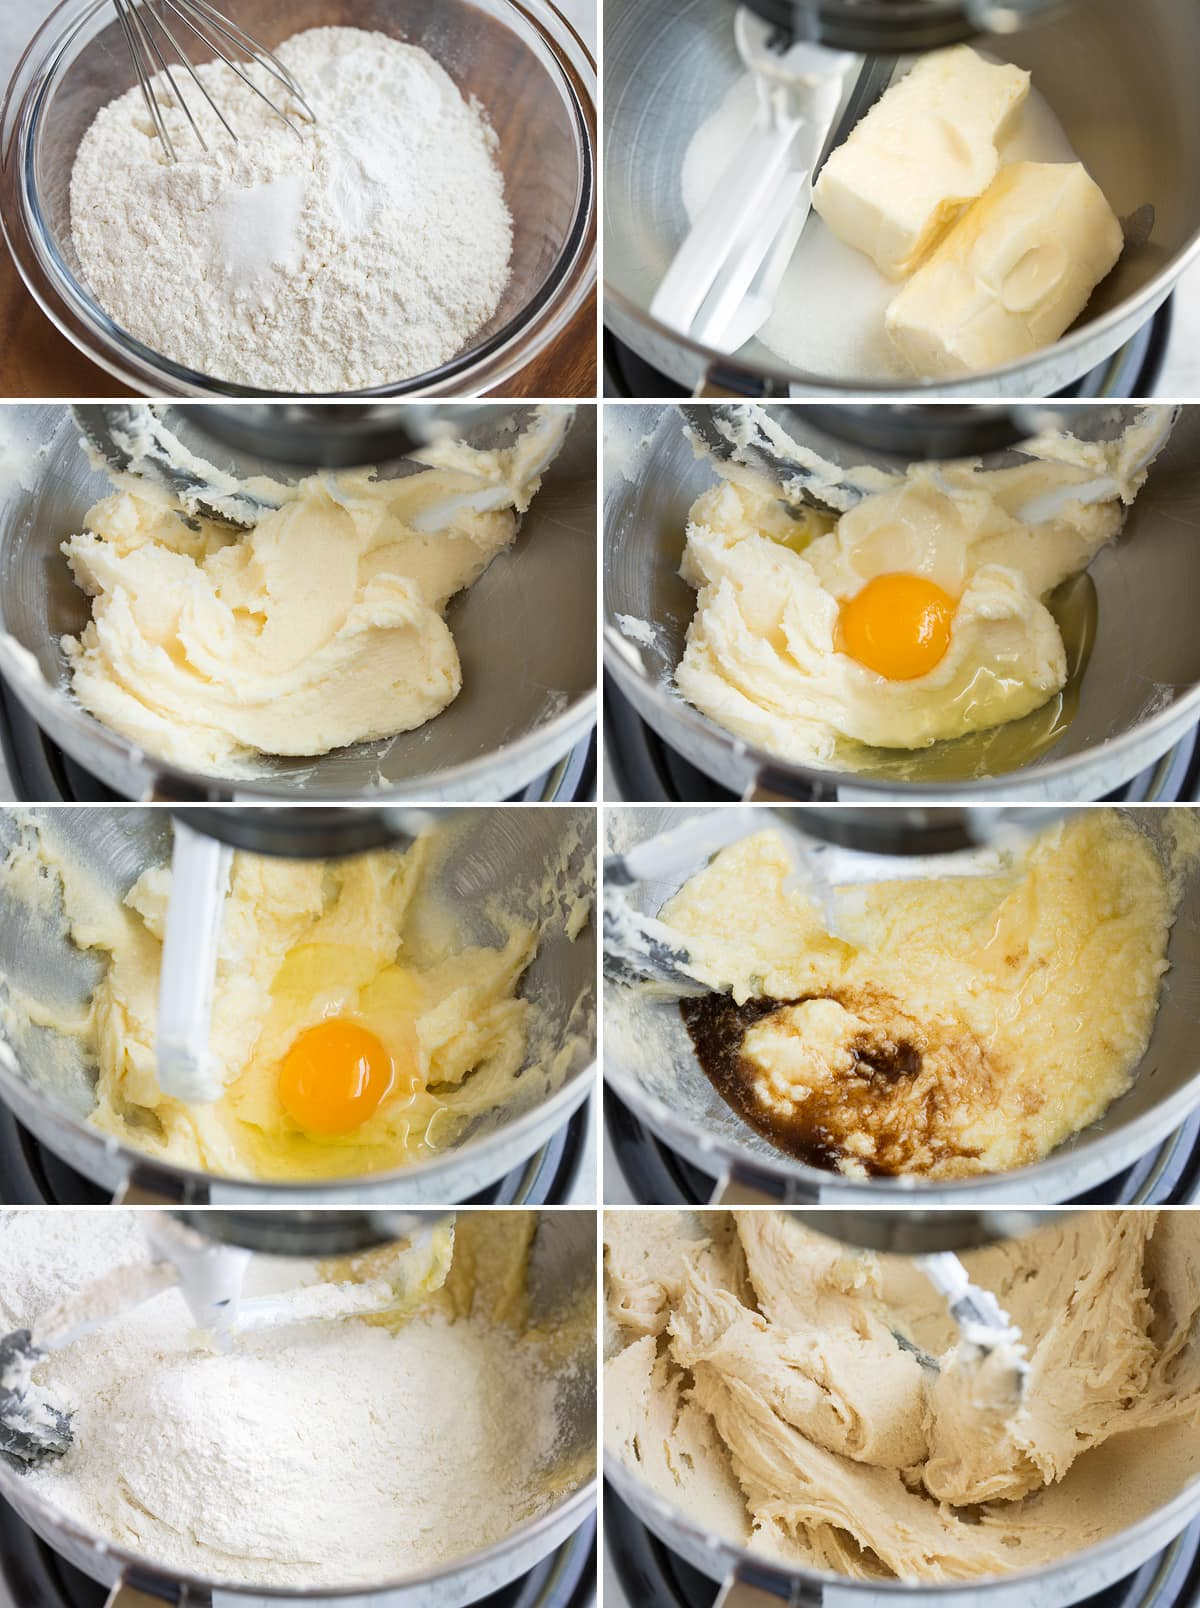 Collage image of 10 steps showing how to make sugar cookie bar batter in an electric mixer bowl with paddle.